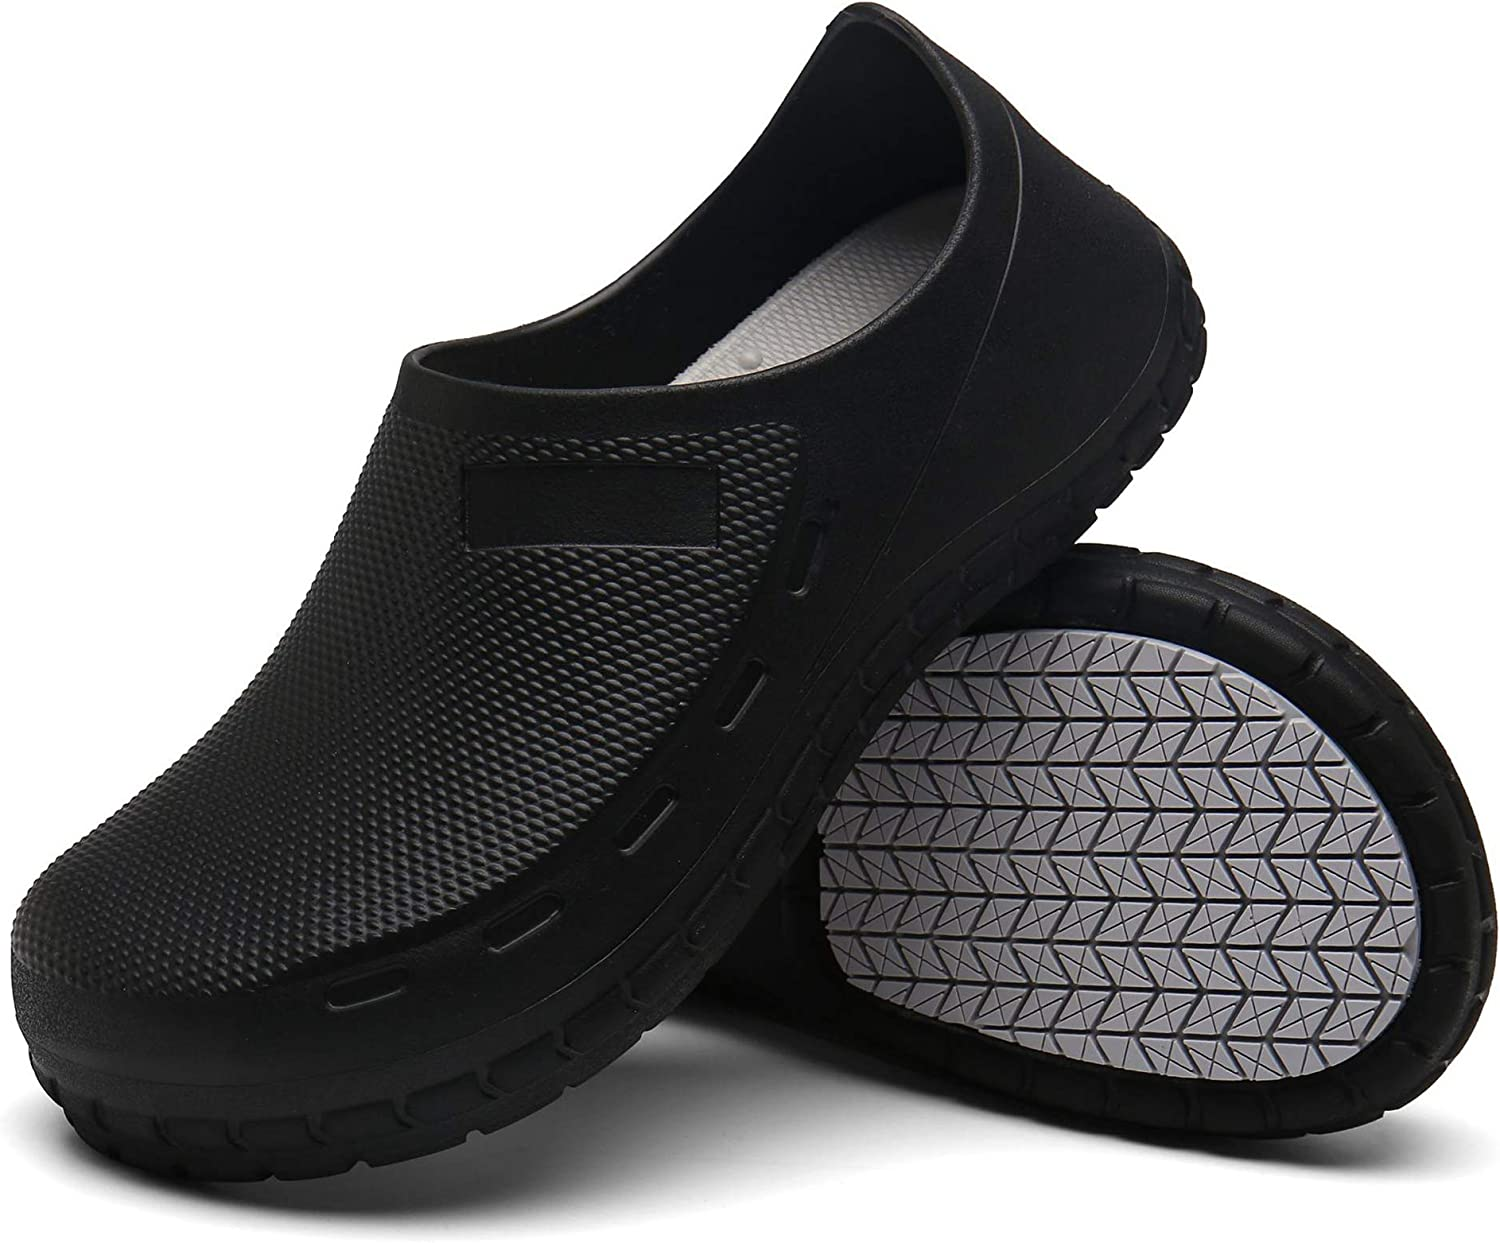 FFYLEN Chef Shoes for Men - 2021 spring and summer new Resistant Oil Non Waterproof Slip Sa Lowest price challenge